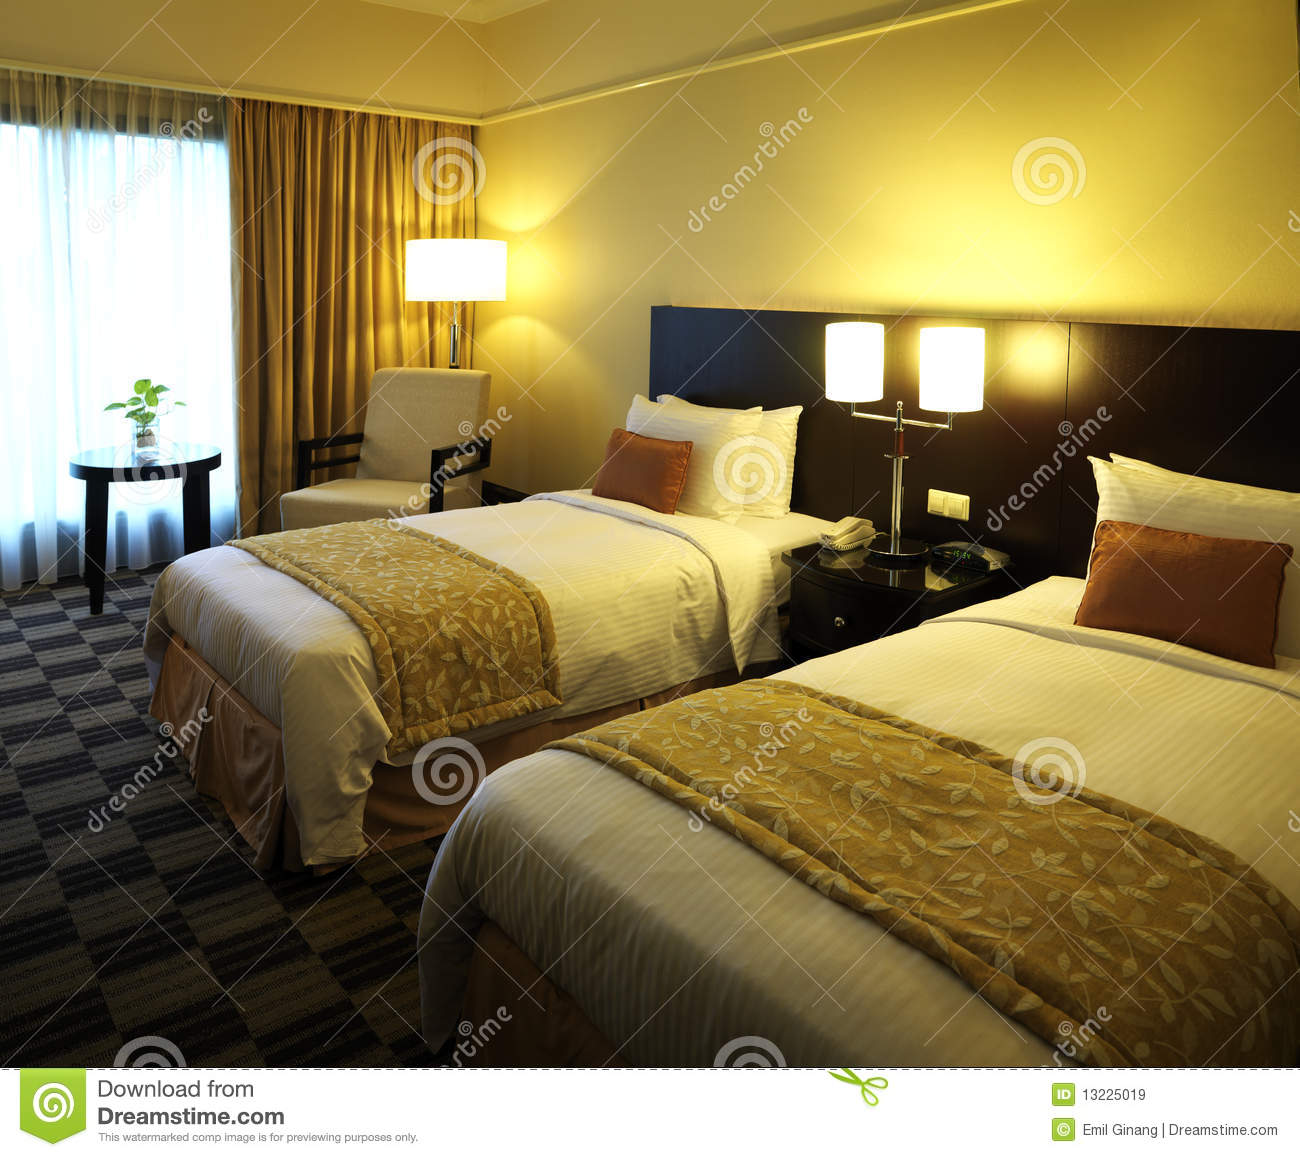 Modern hotel room interior stock photo image 18197840 - Hotel Room Royalty Free Stock Images